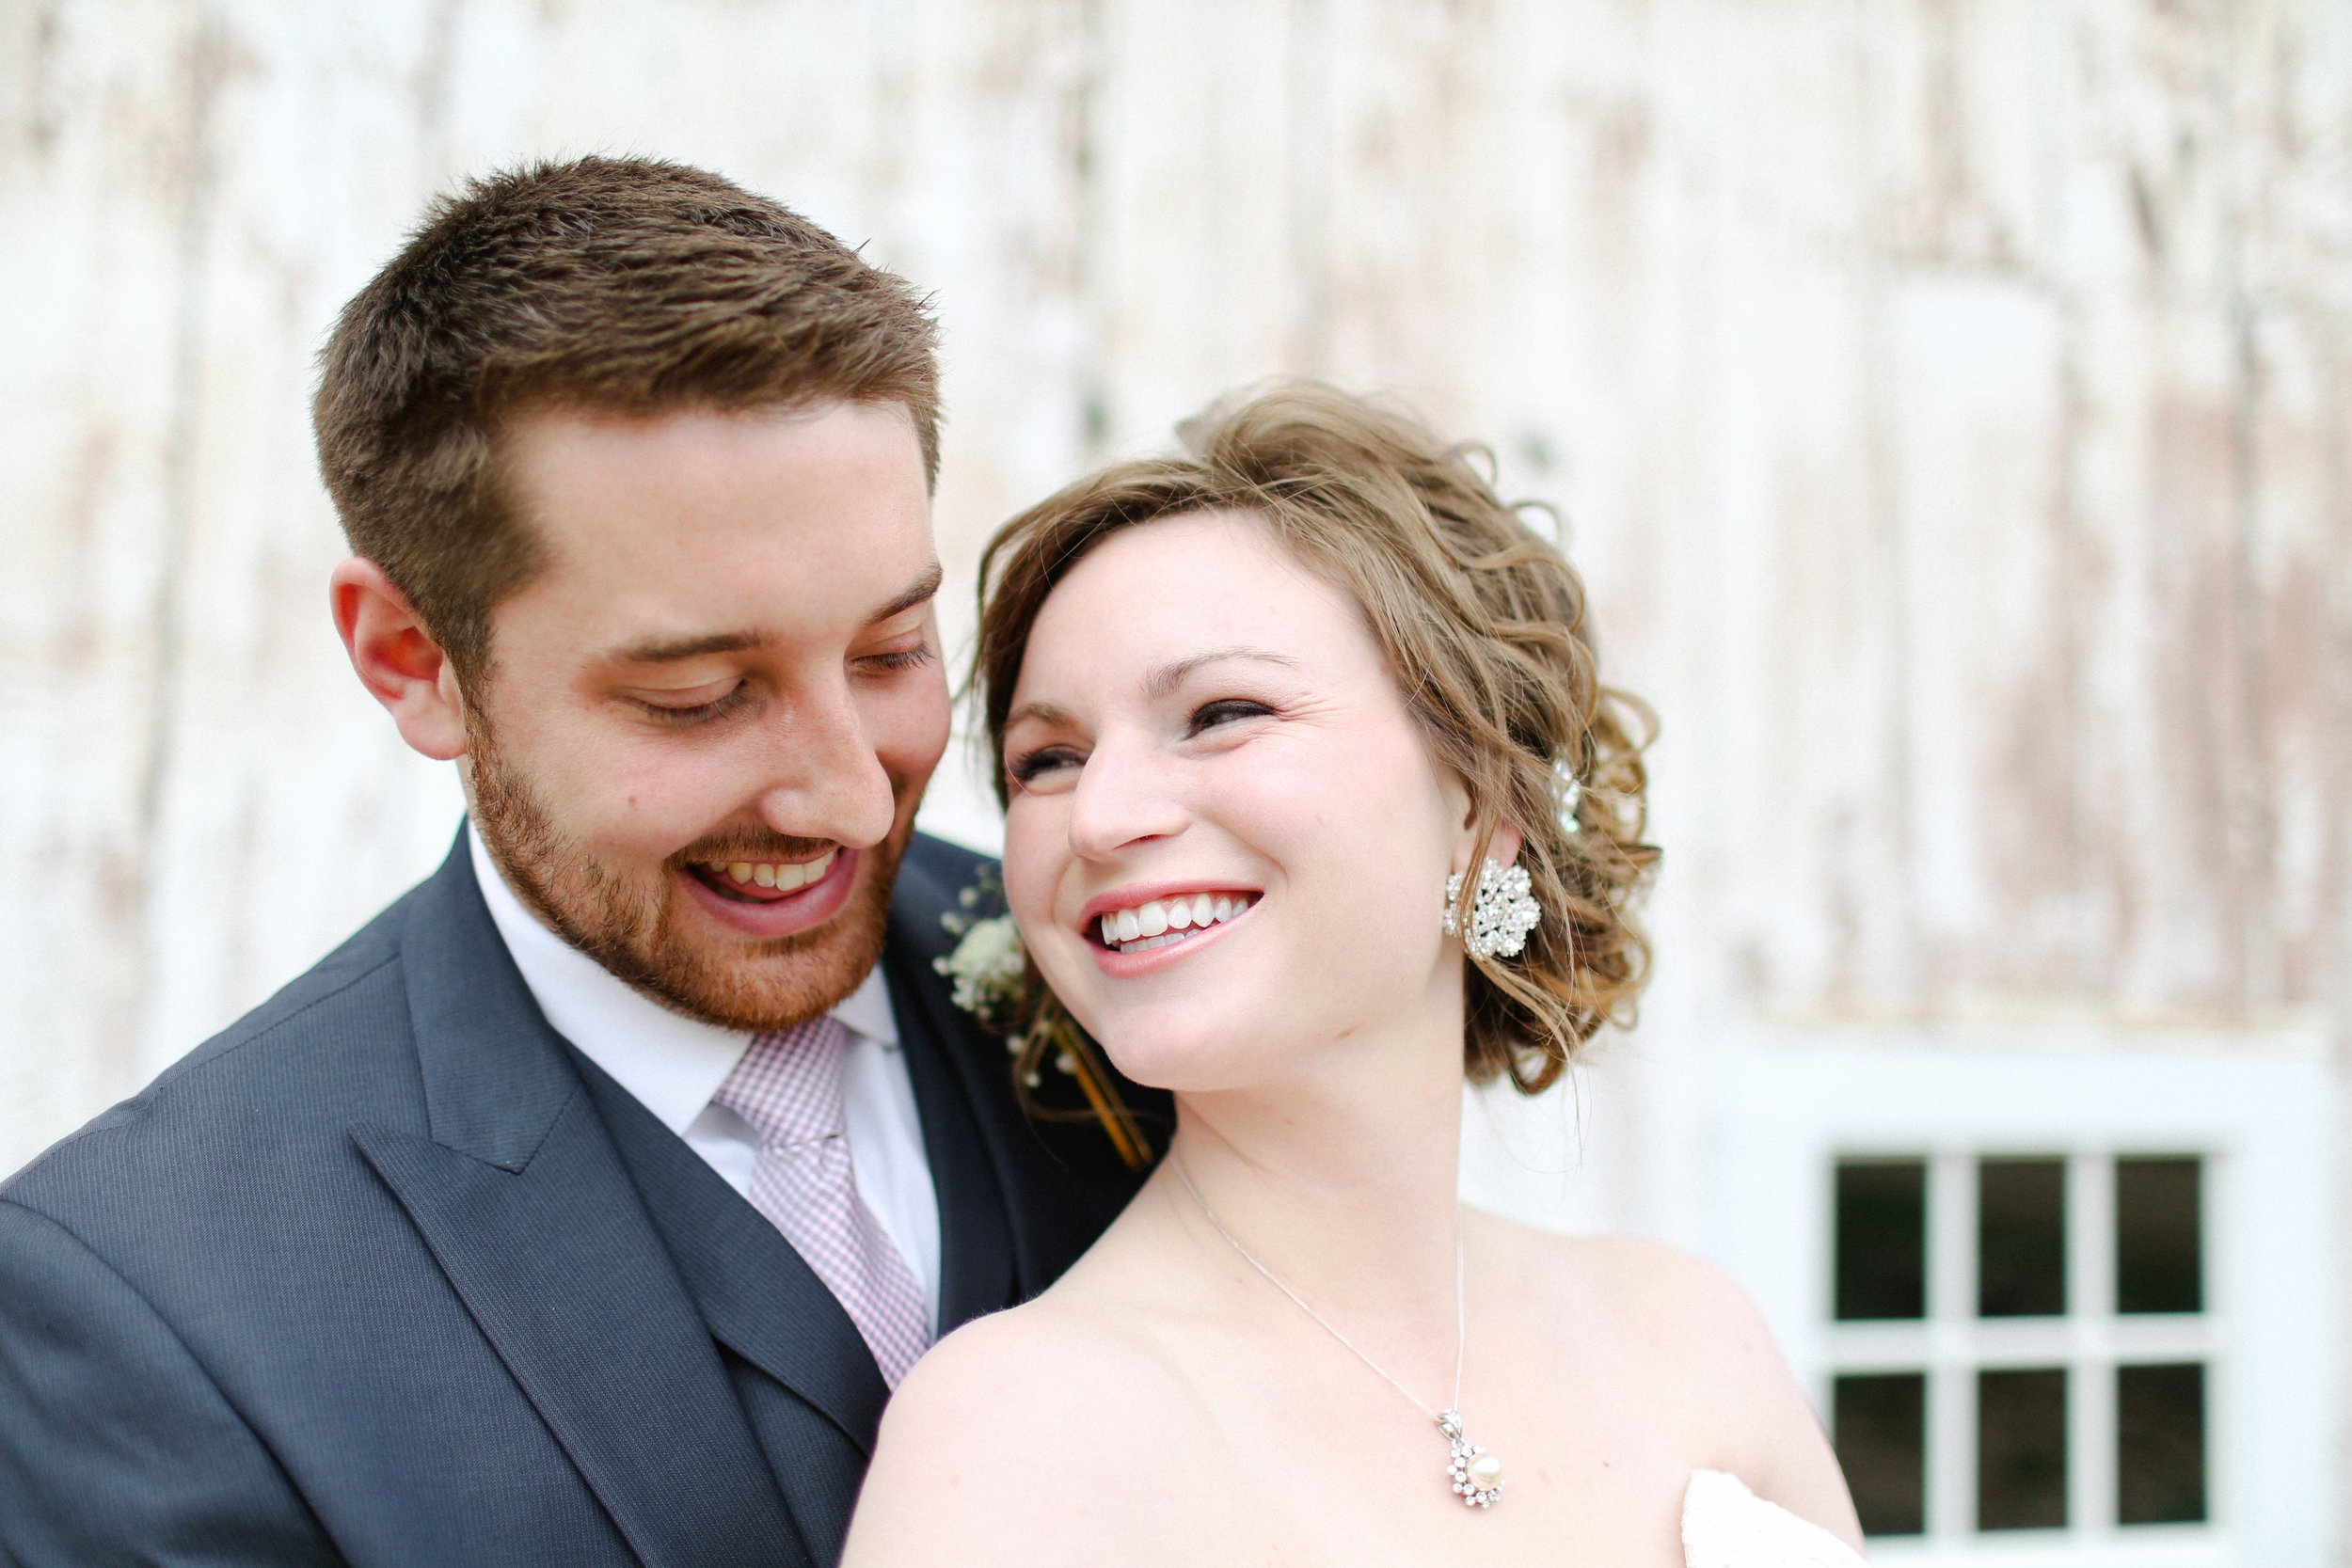 Rachel & Jared Miller, Married May 9, 2014 at Barn at Harvest Moon Pond